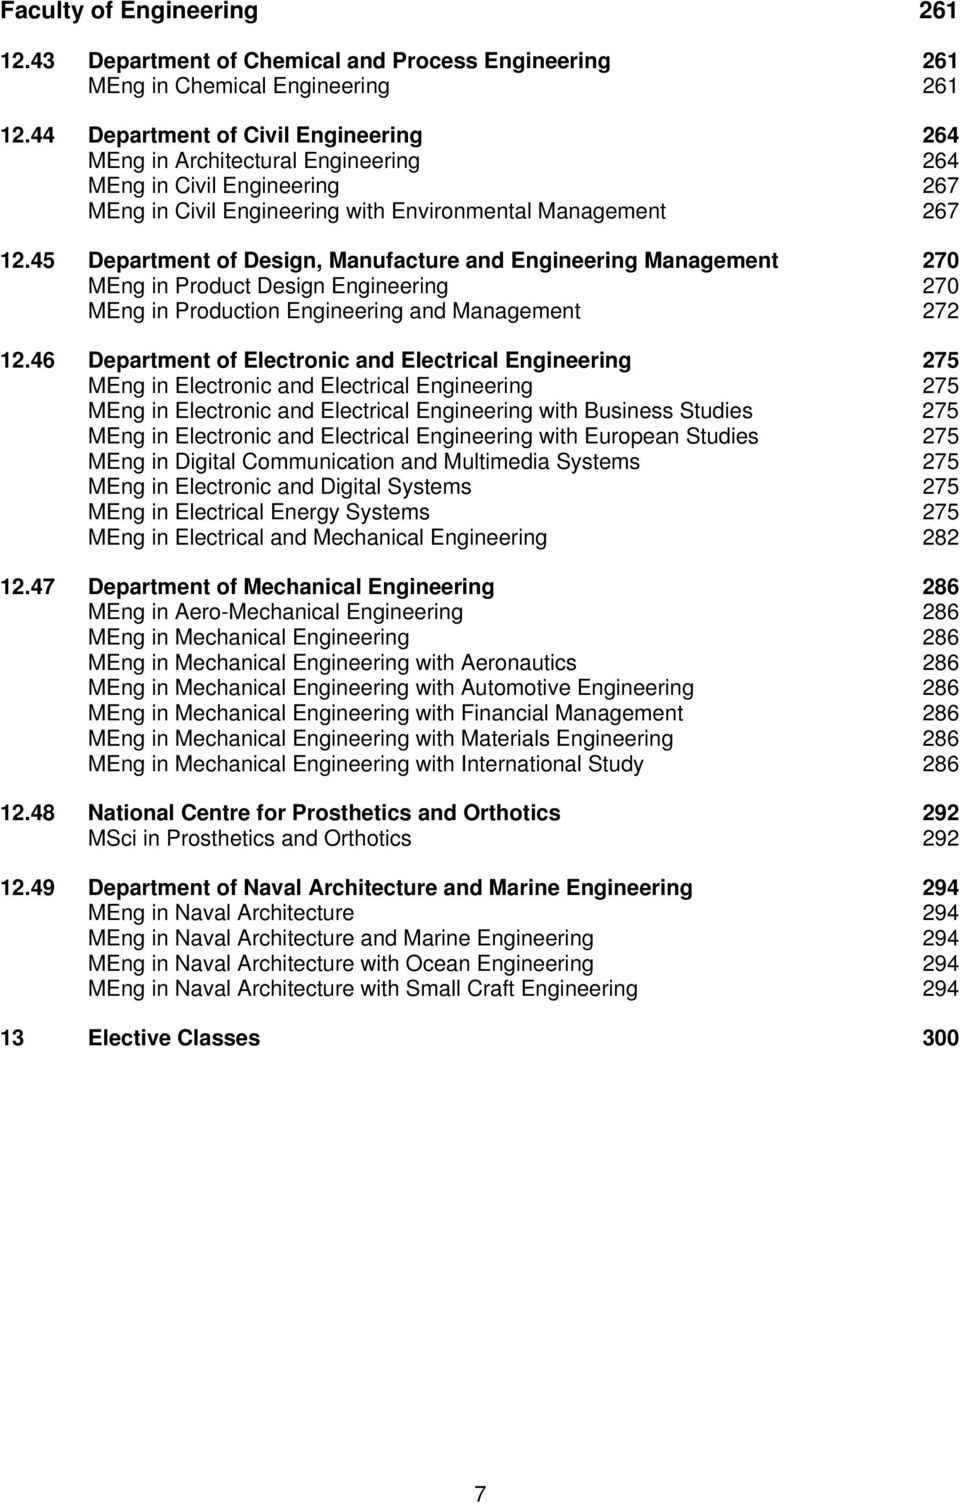 45 Department of Design, Manufacture and Engineering Management 270 MEng in Product Design Engineering 270 MEng in Production Engineering and Management 272 12.